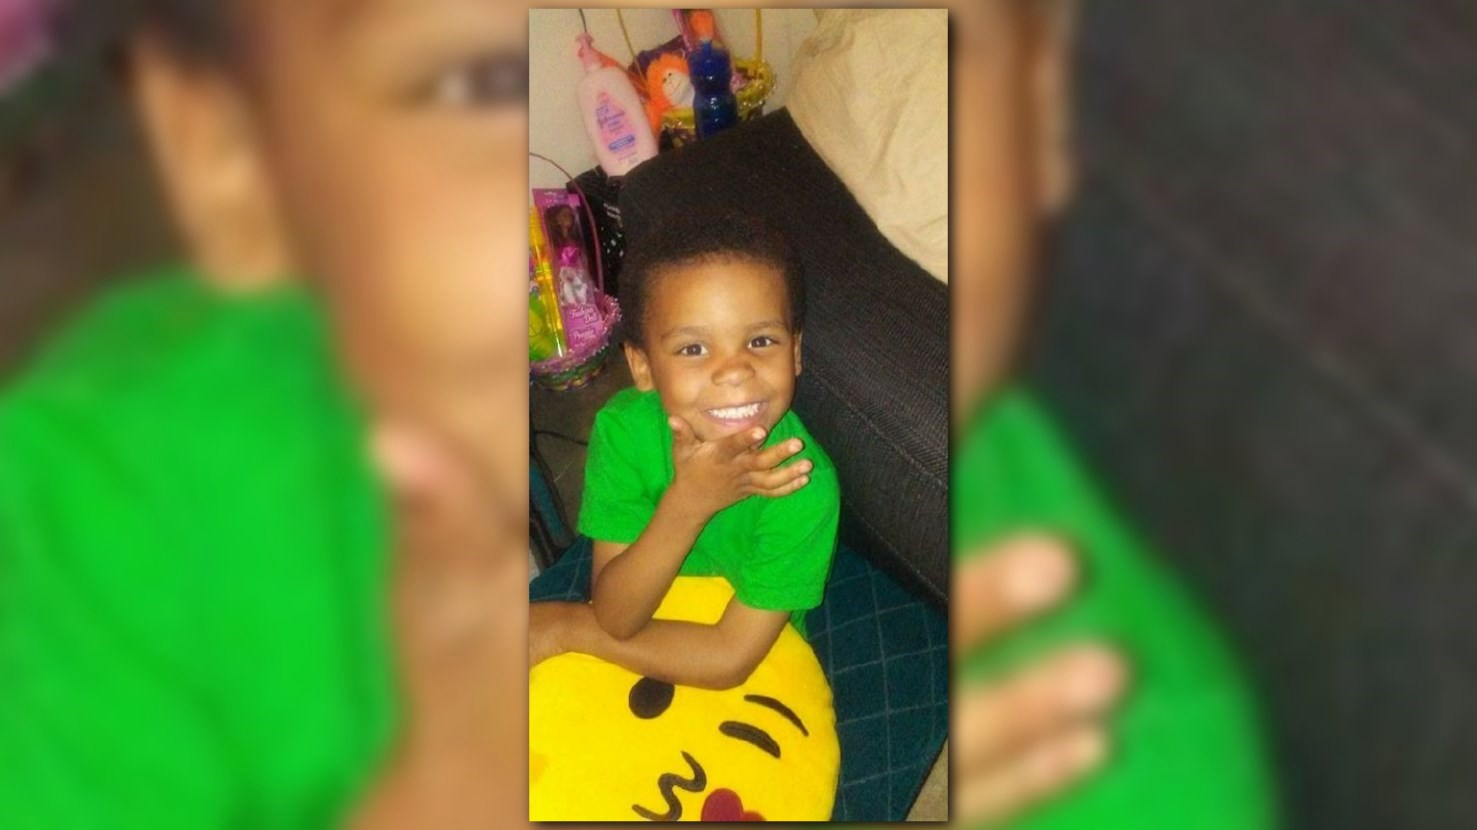 Police search for 5-year-old removed from Knoxville home